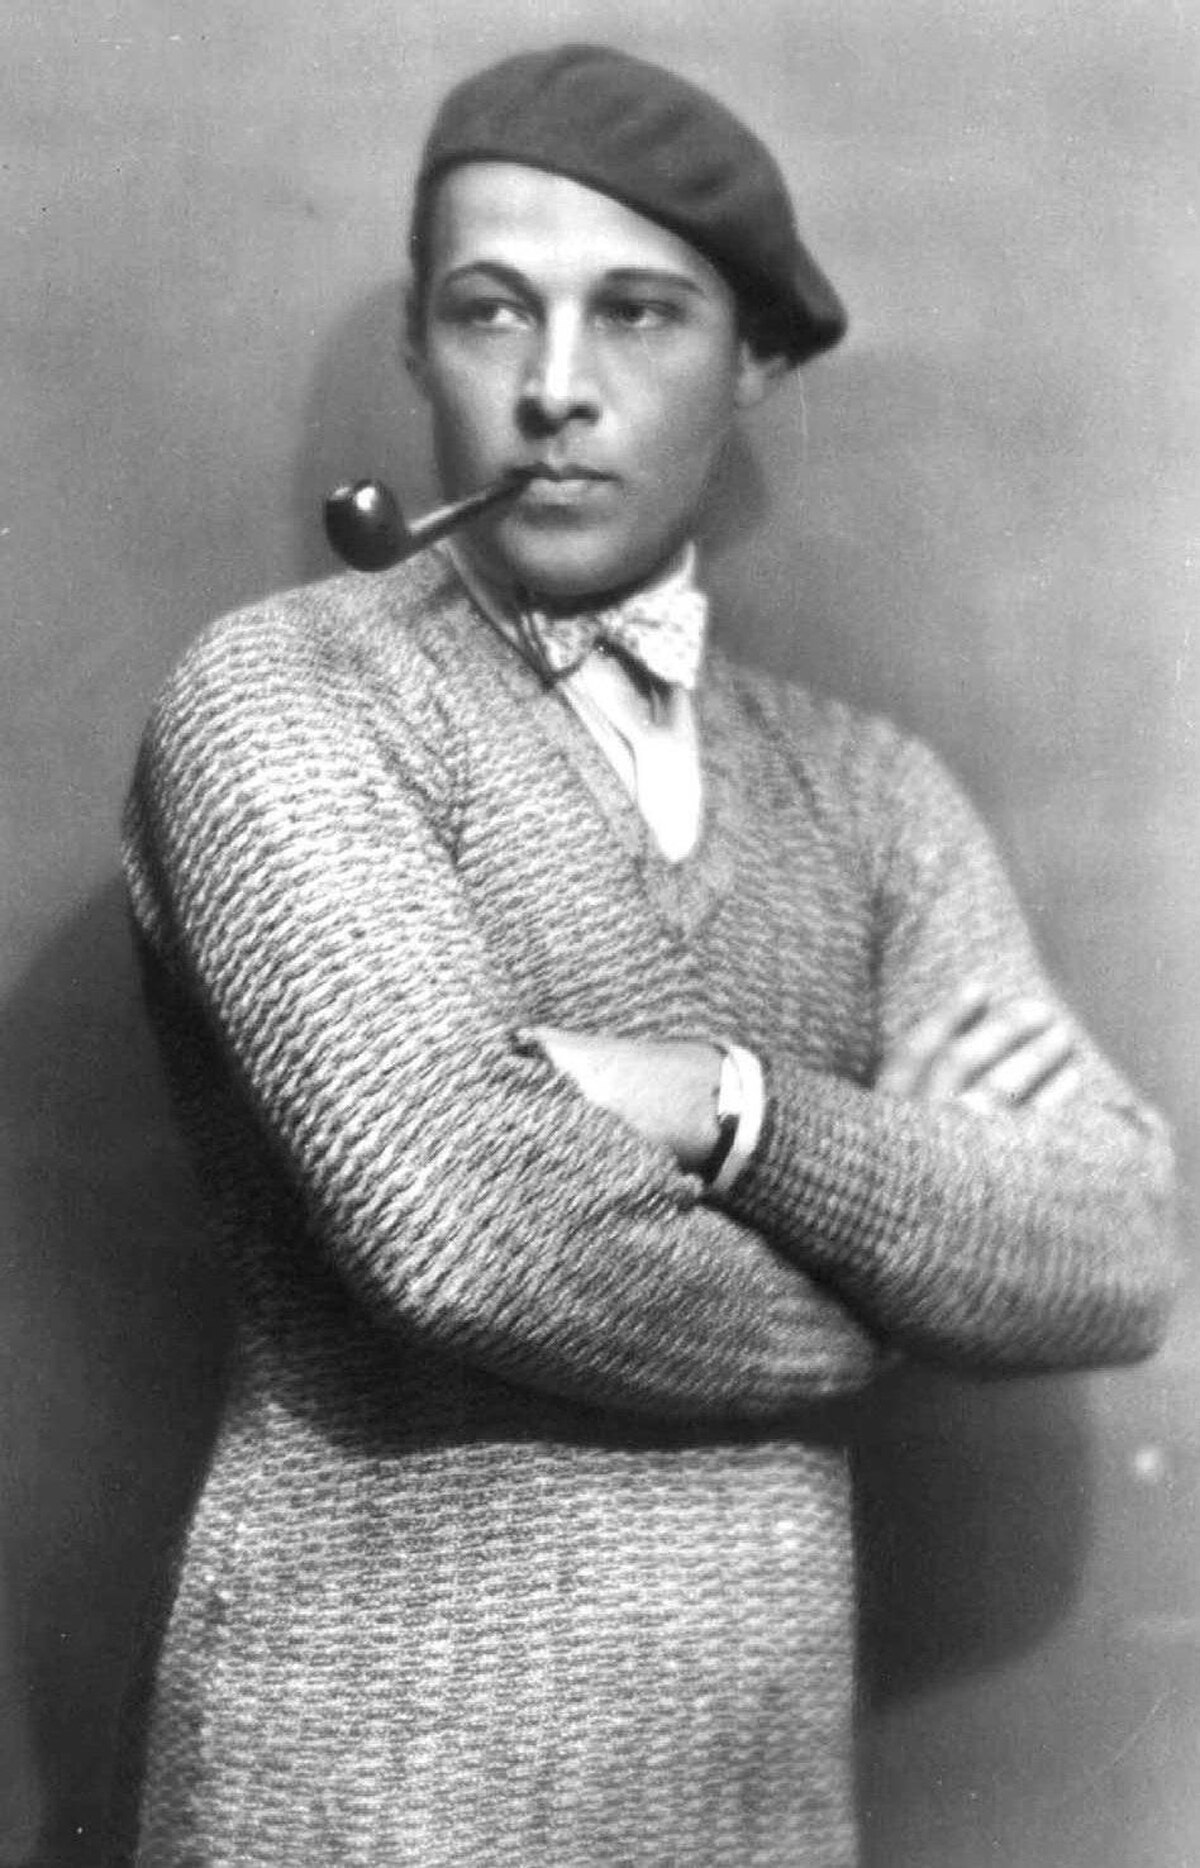 Still on top after close to a century, Rudolph Valentino holds the record for the sortest celebrity marriage. He impetuously married actress Jean Acker in 1919 but never even made it to the nuptial bed. Acker immediately regretted the marriage and refused to let him into their honeymoon suite. The marriage was never consummated, and they eventually divorced in 1921.